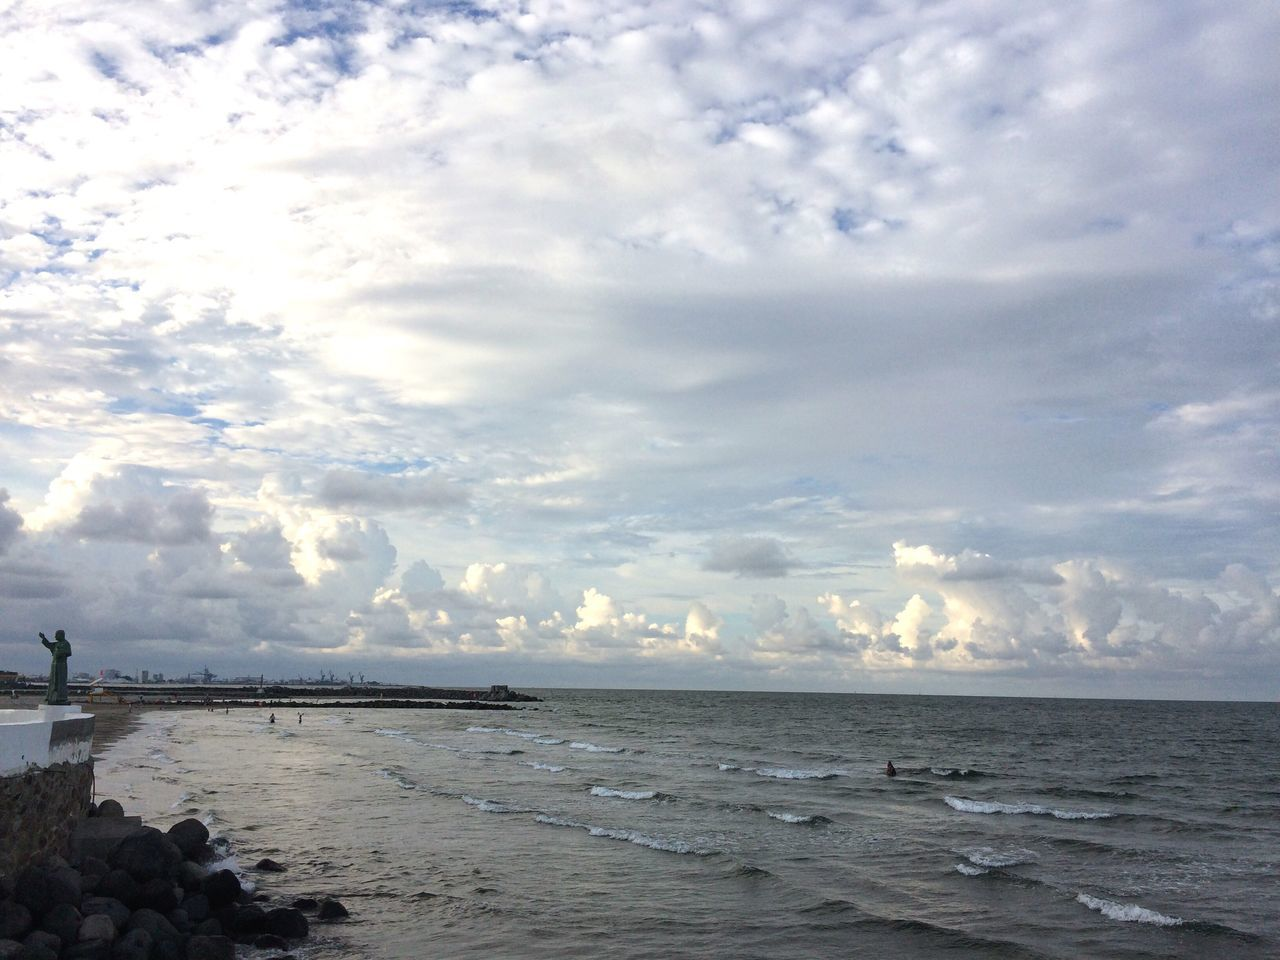 sea, water, beauty in nature, nature, beach, sky, cloud - sky, tranquility, tranquil scene, scenics, horizon over water, outdoors, no people, travel destinations, sand, vacations, day, architecture